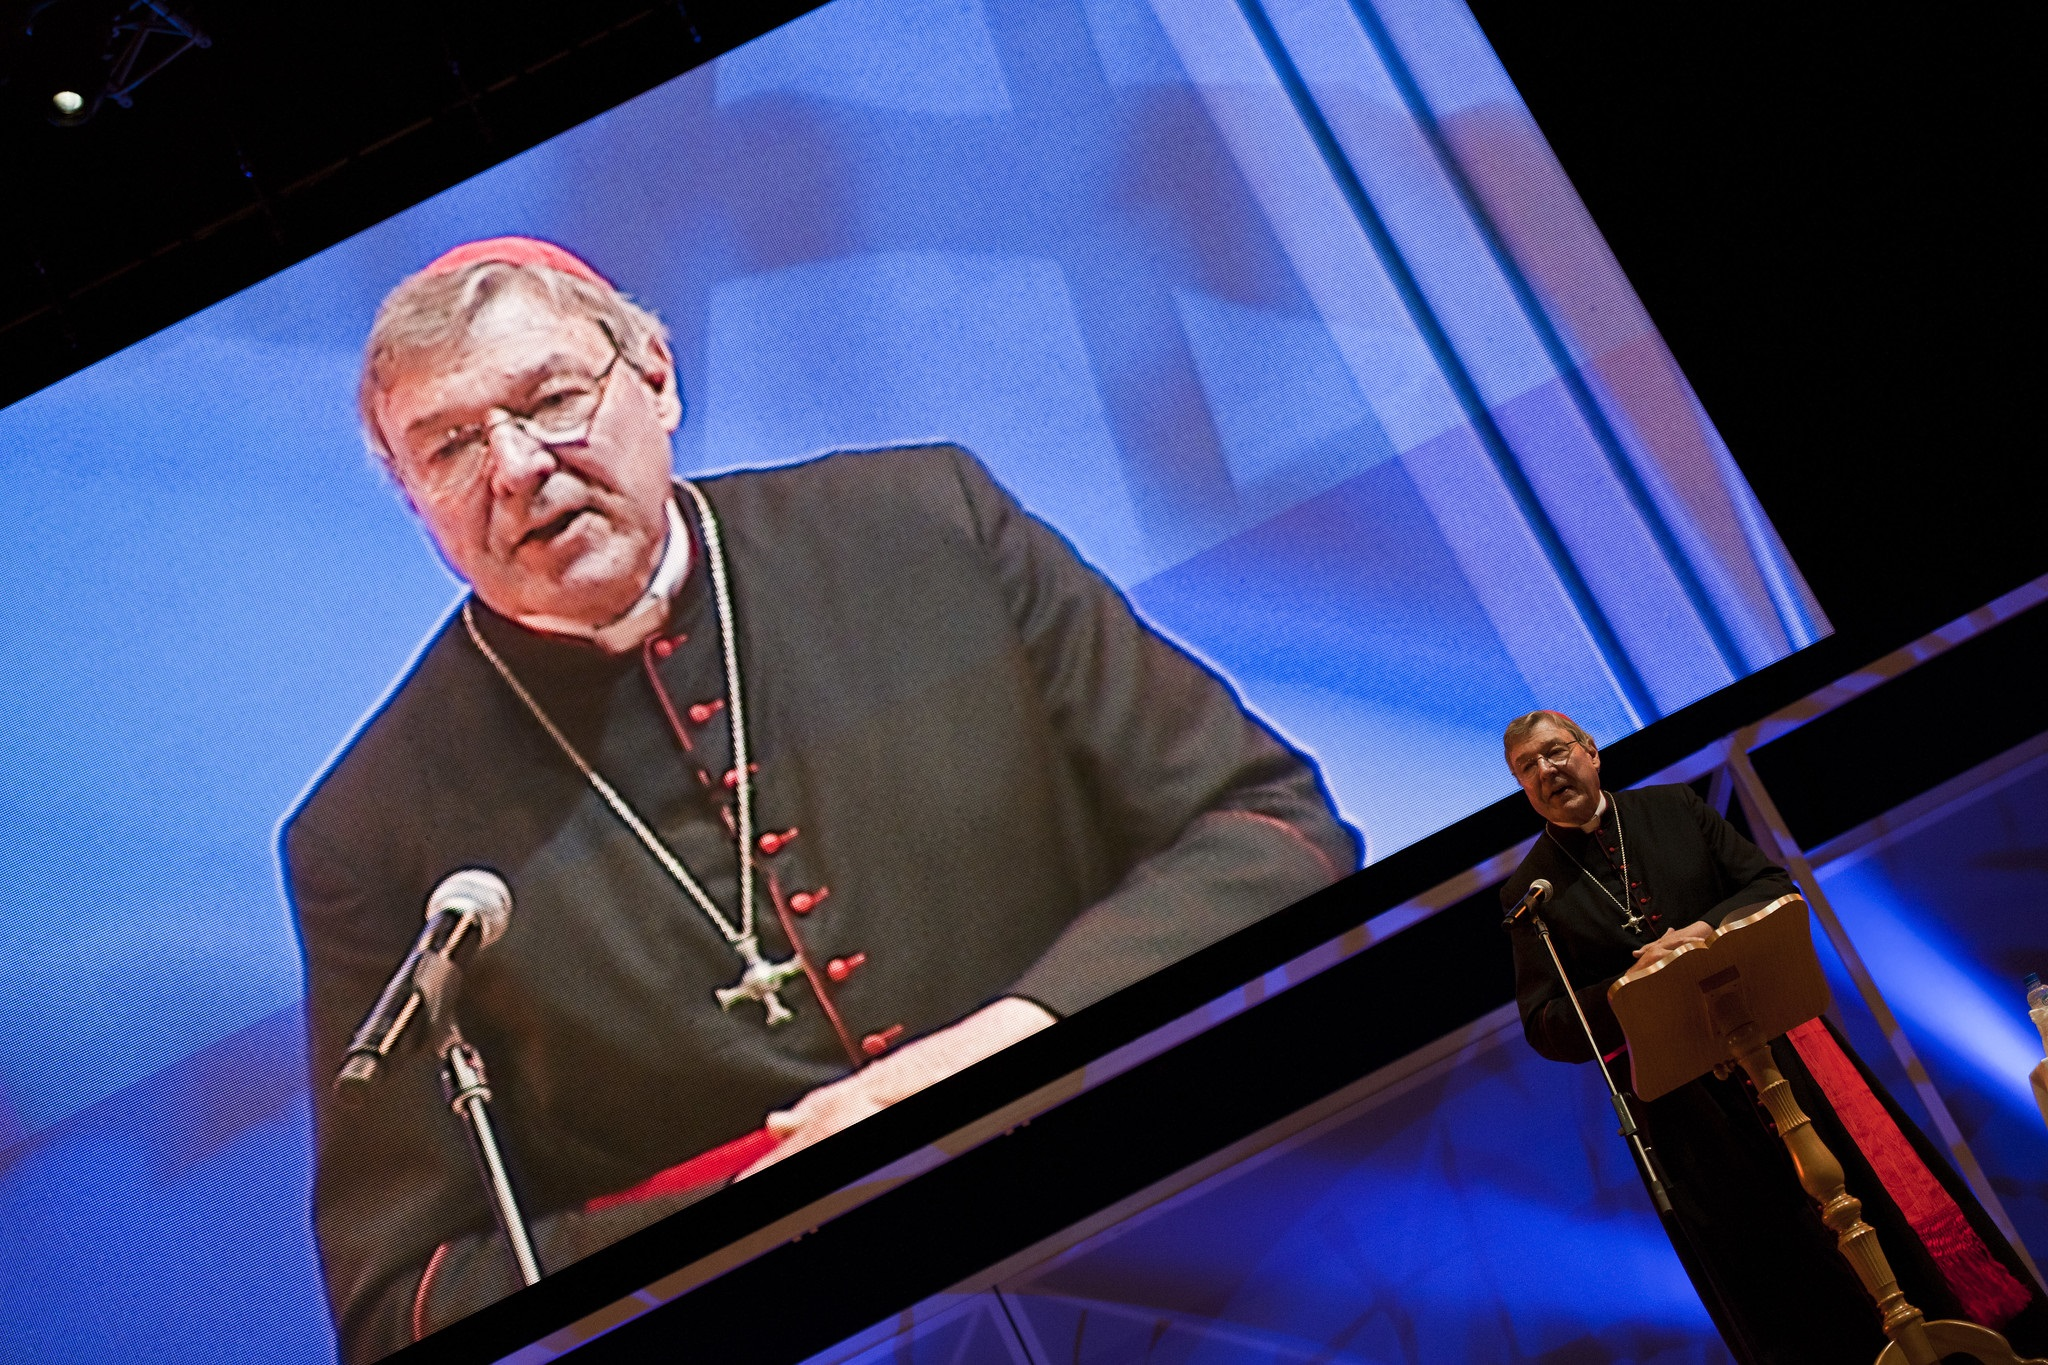 EXCLUSIVE: Yet another assault allegation emerges against George Pell